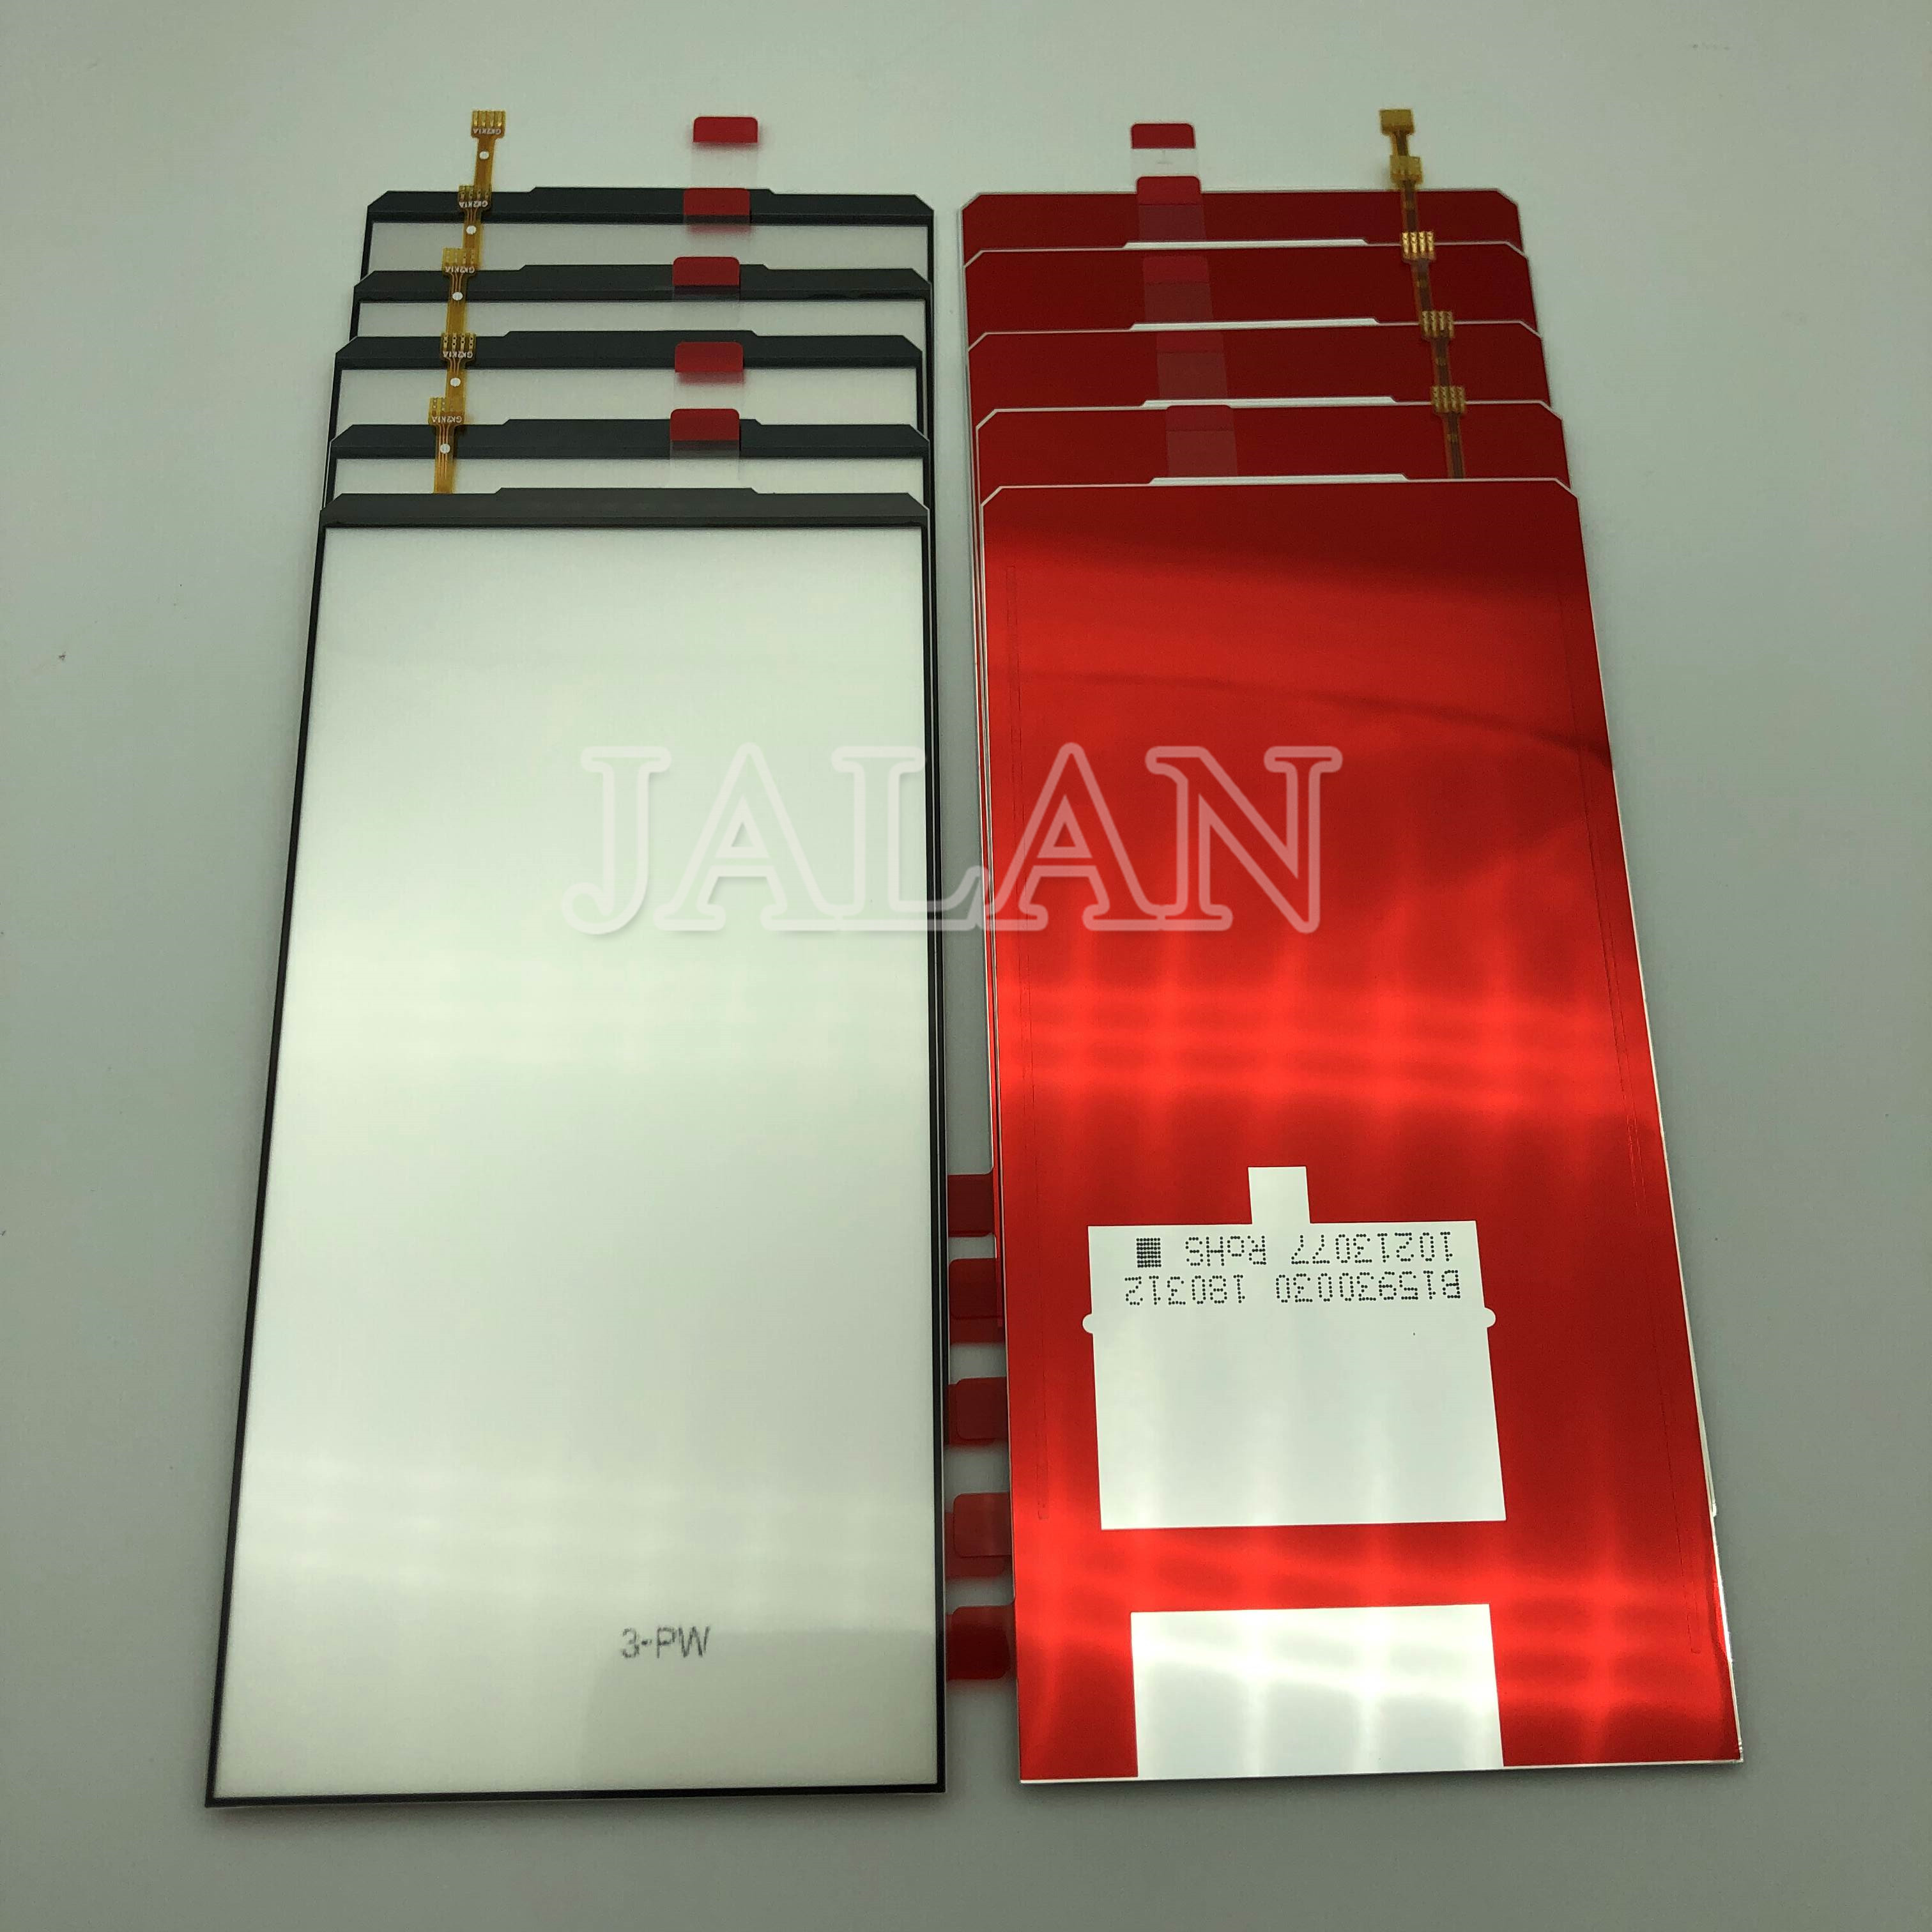 5pcs BackLight Film For Huawei P9/P10/P20,P9/P10/P20/mate 20 Lite,Y7 2018 Replacement Repair LCD 3D Touch Back Light Film